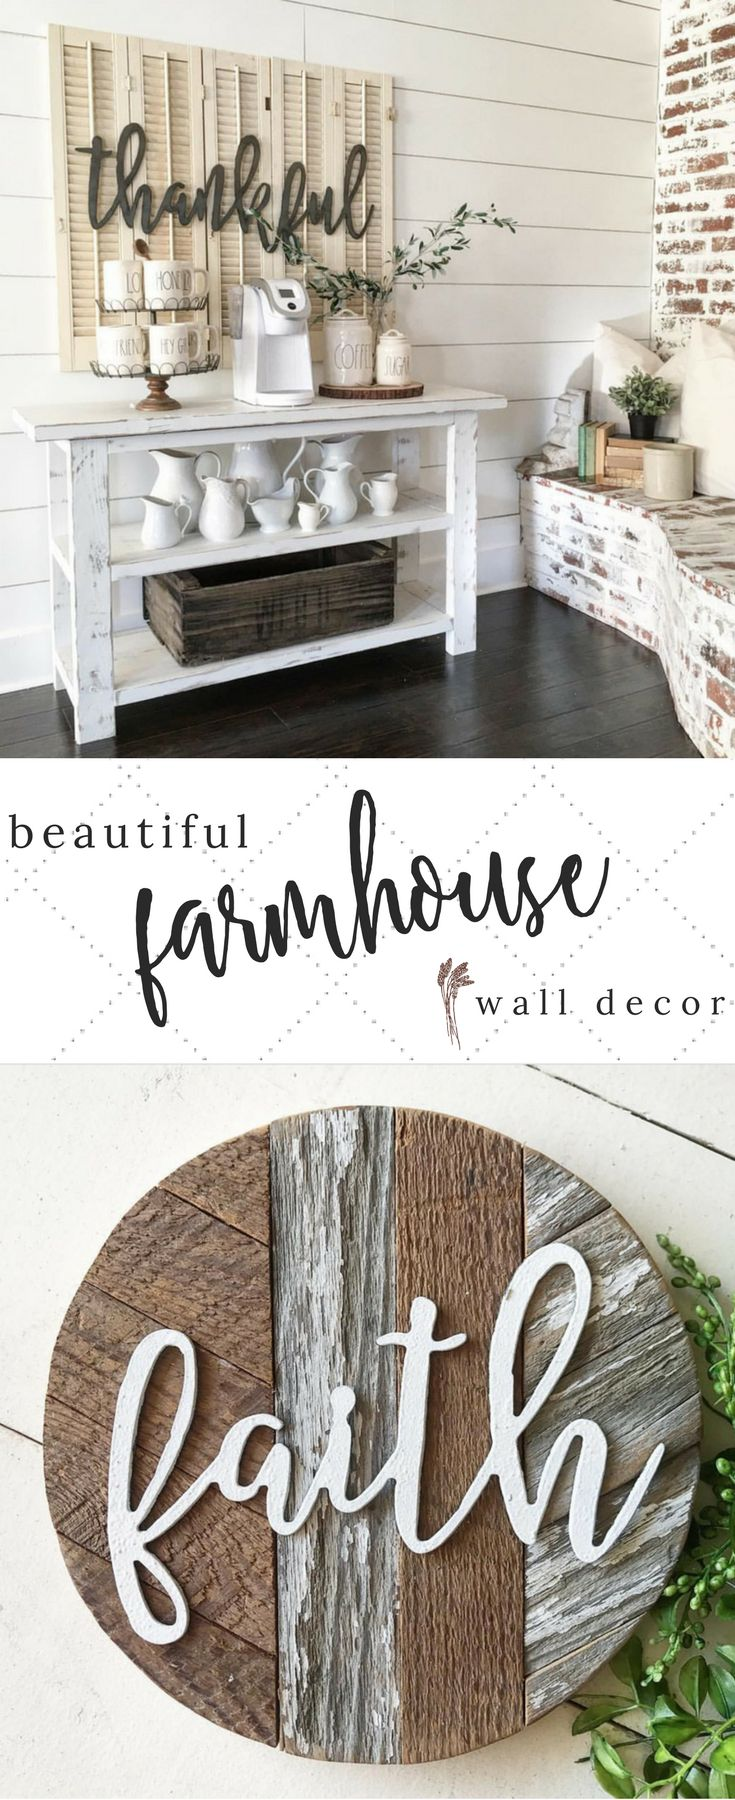 I like the finish on the fireplace...extra mortar?